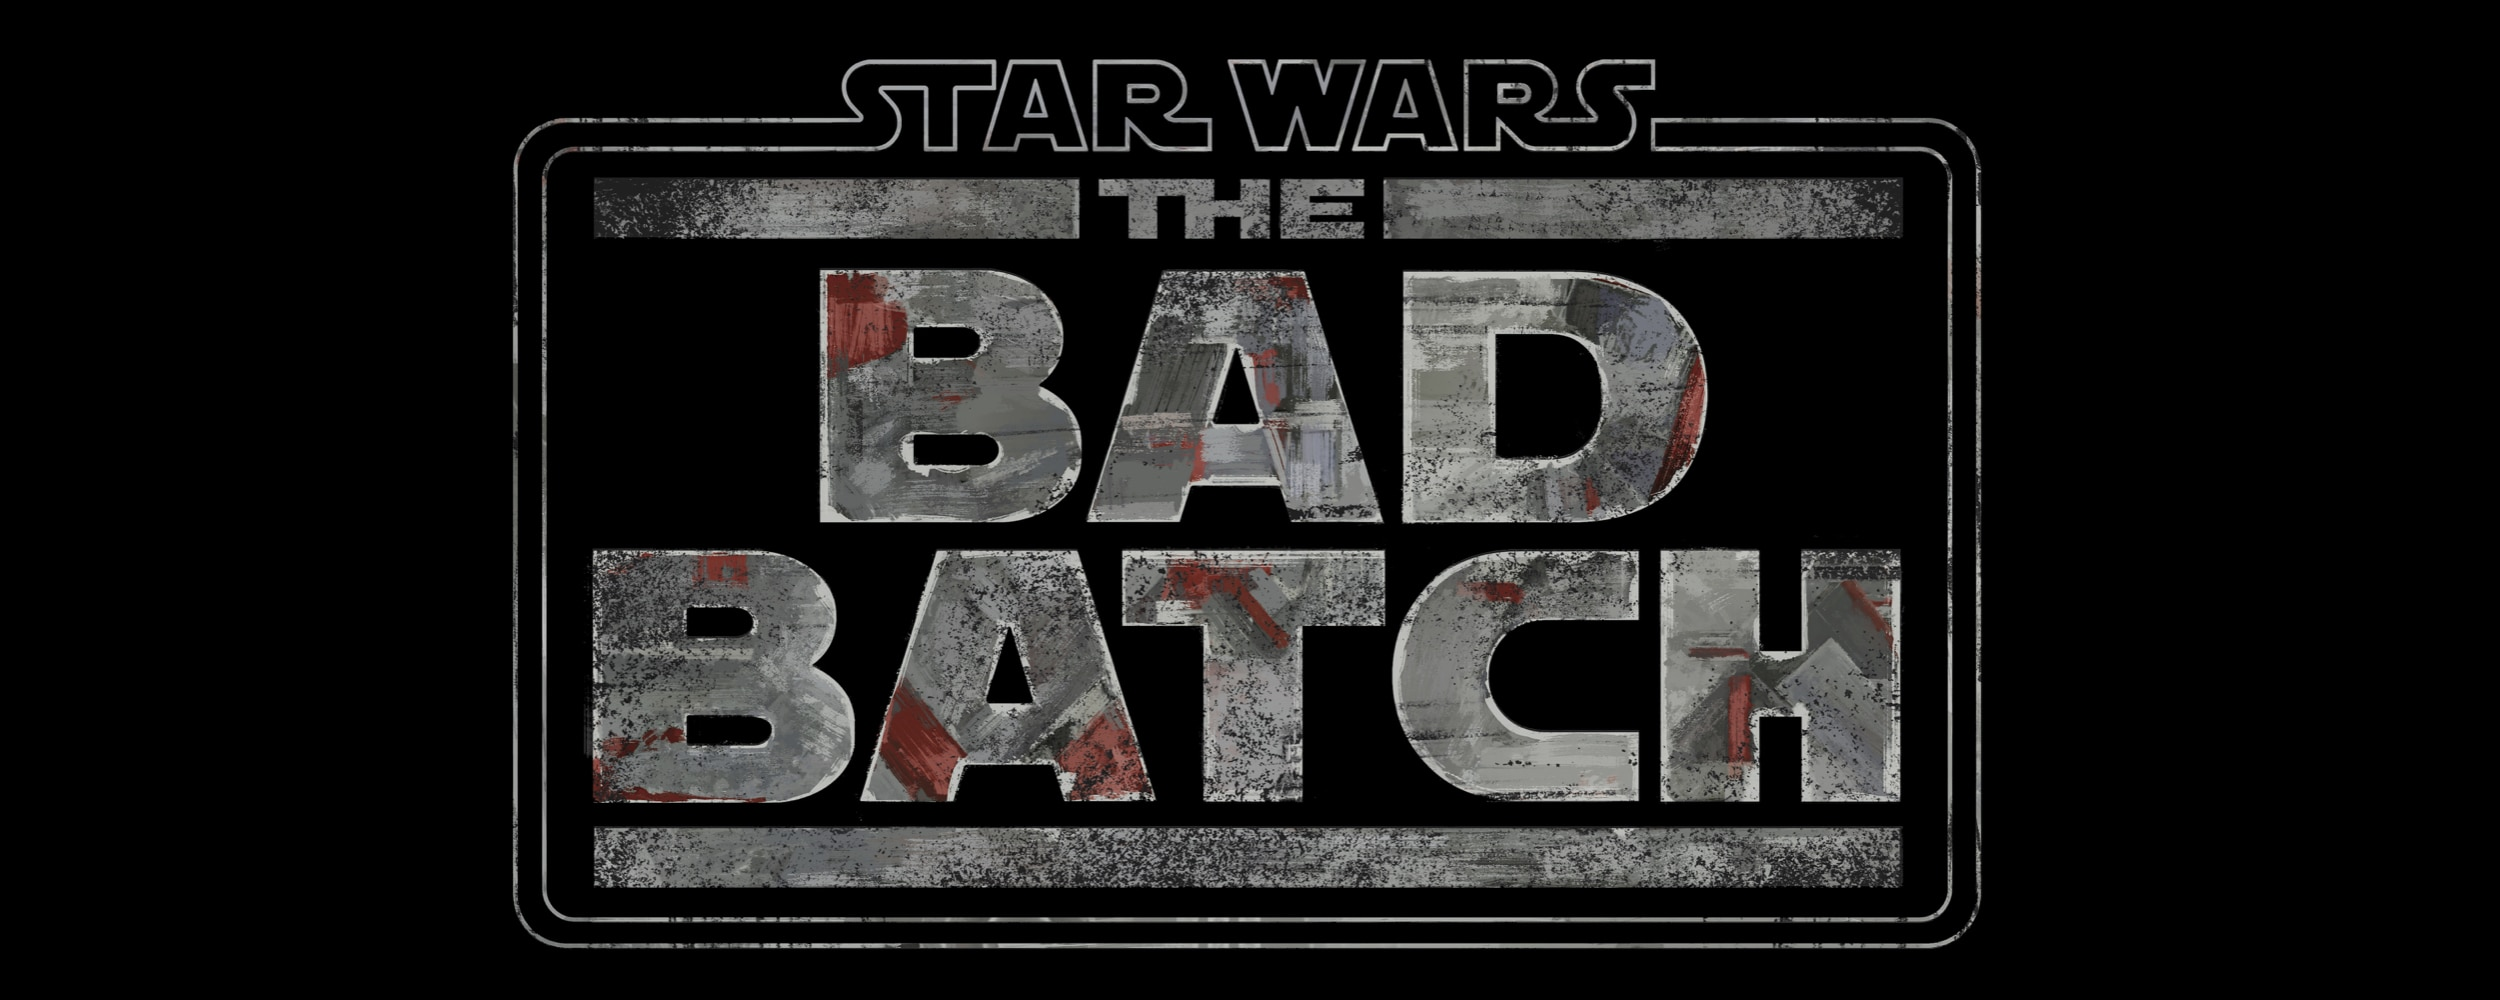 Star Wars: The Bad Batch Media Kit